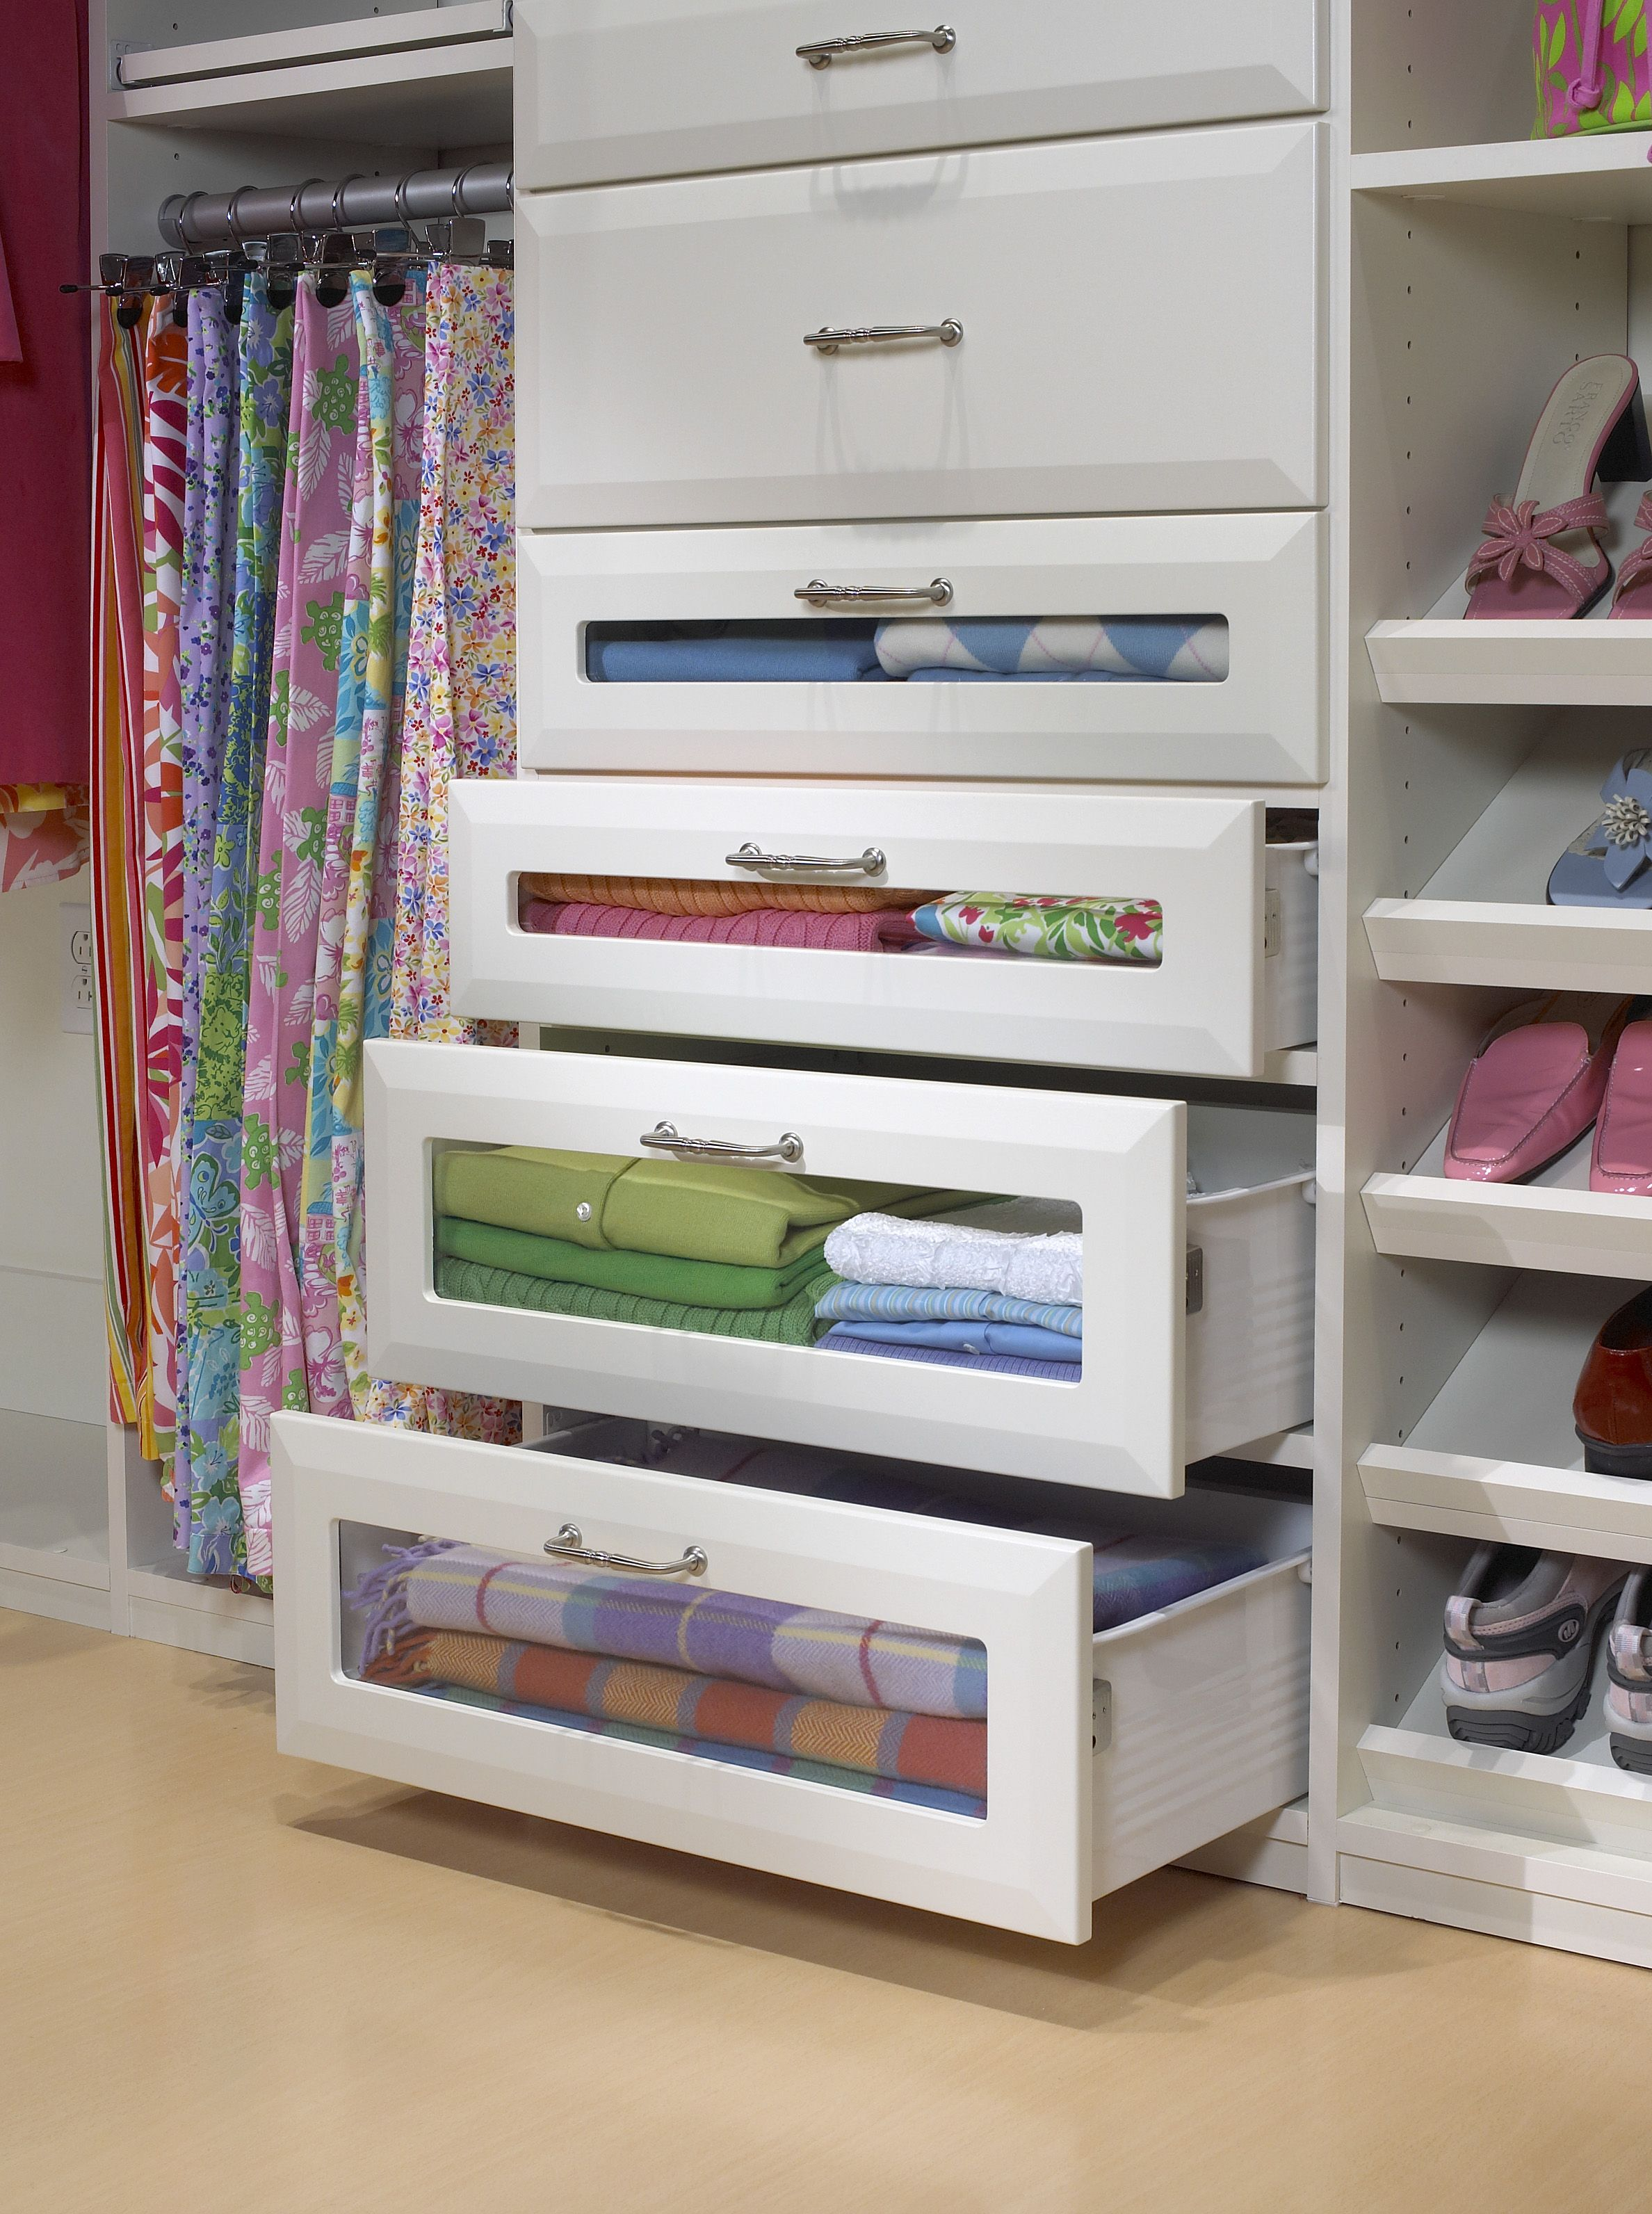 Etonnant Saint Louis Closet Co. Offers A Variety Of Profiles For Doors And Drawers.  Glass Front Drawers To See All Your Stuff!